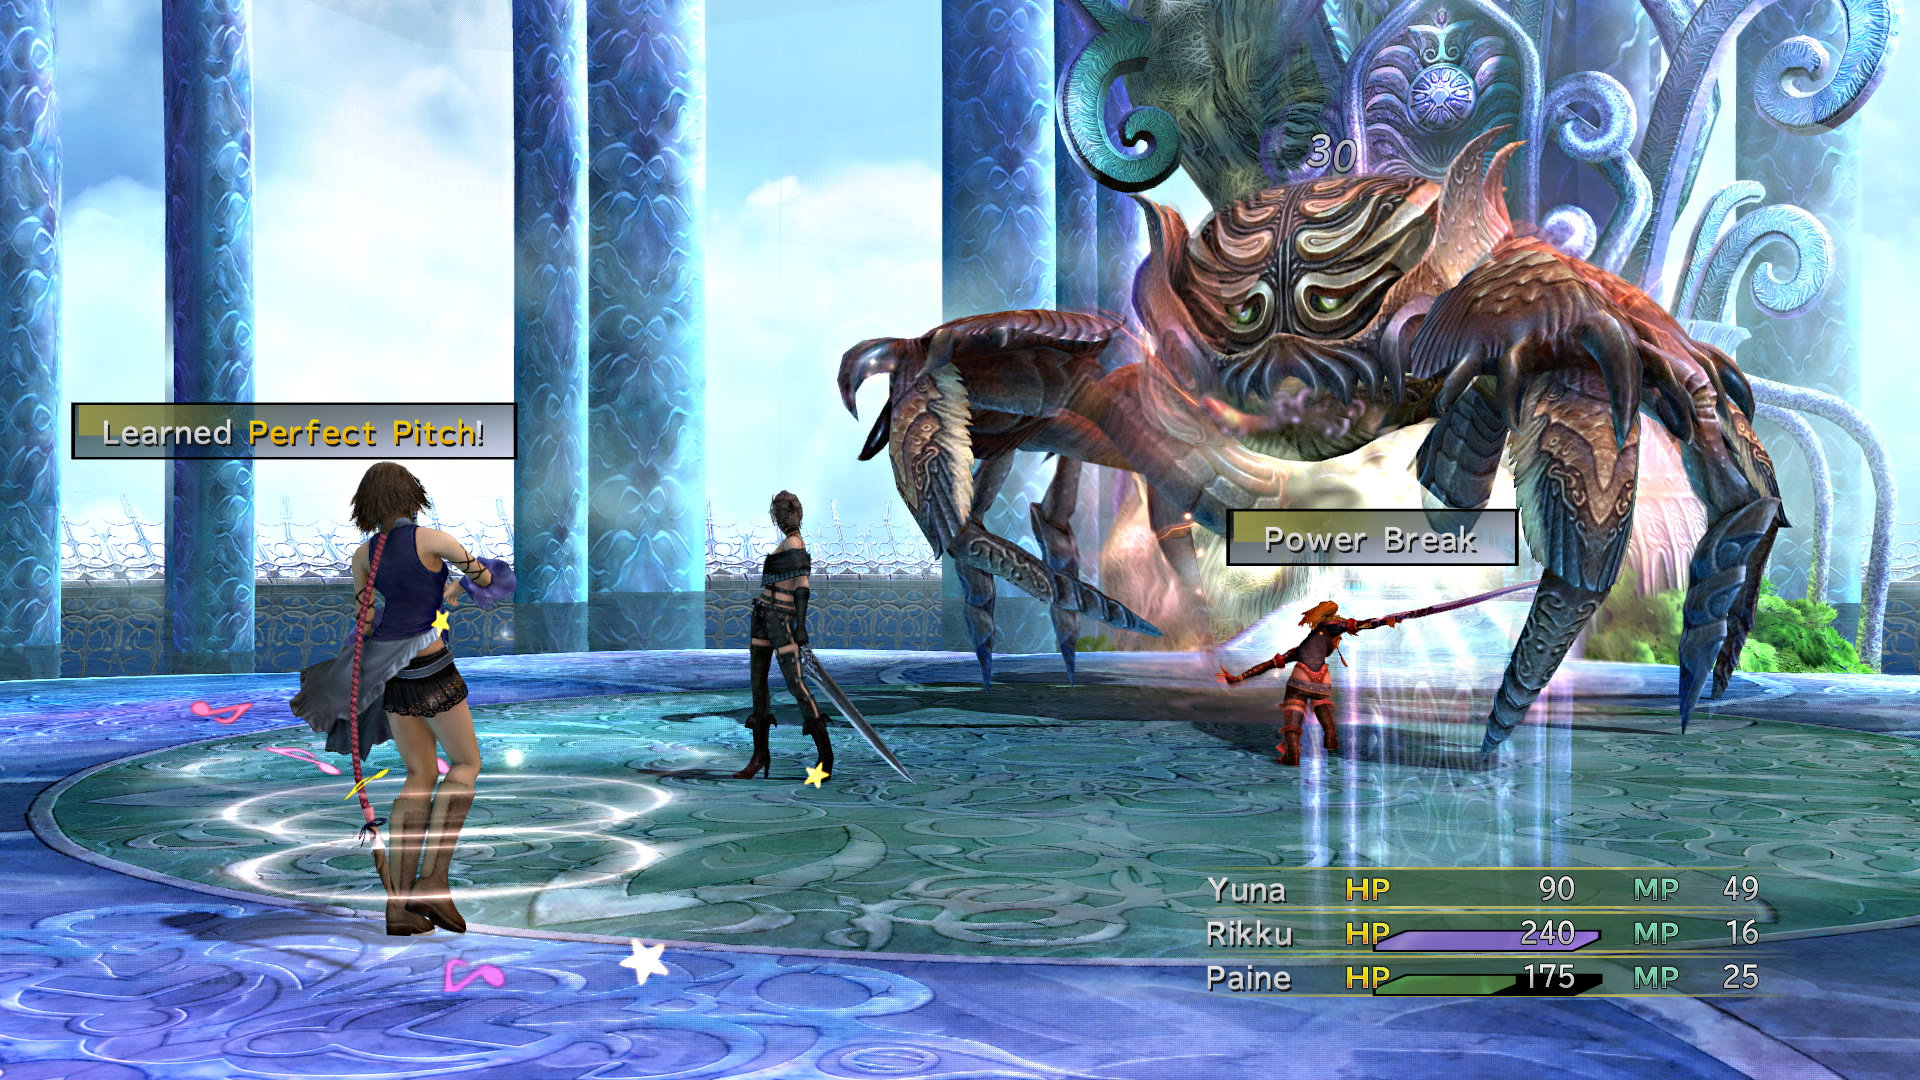 X X 2 Final Fantasy X X 2 Hd Remaster 2013 Promotional Art Mobygames